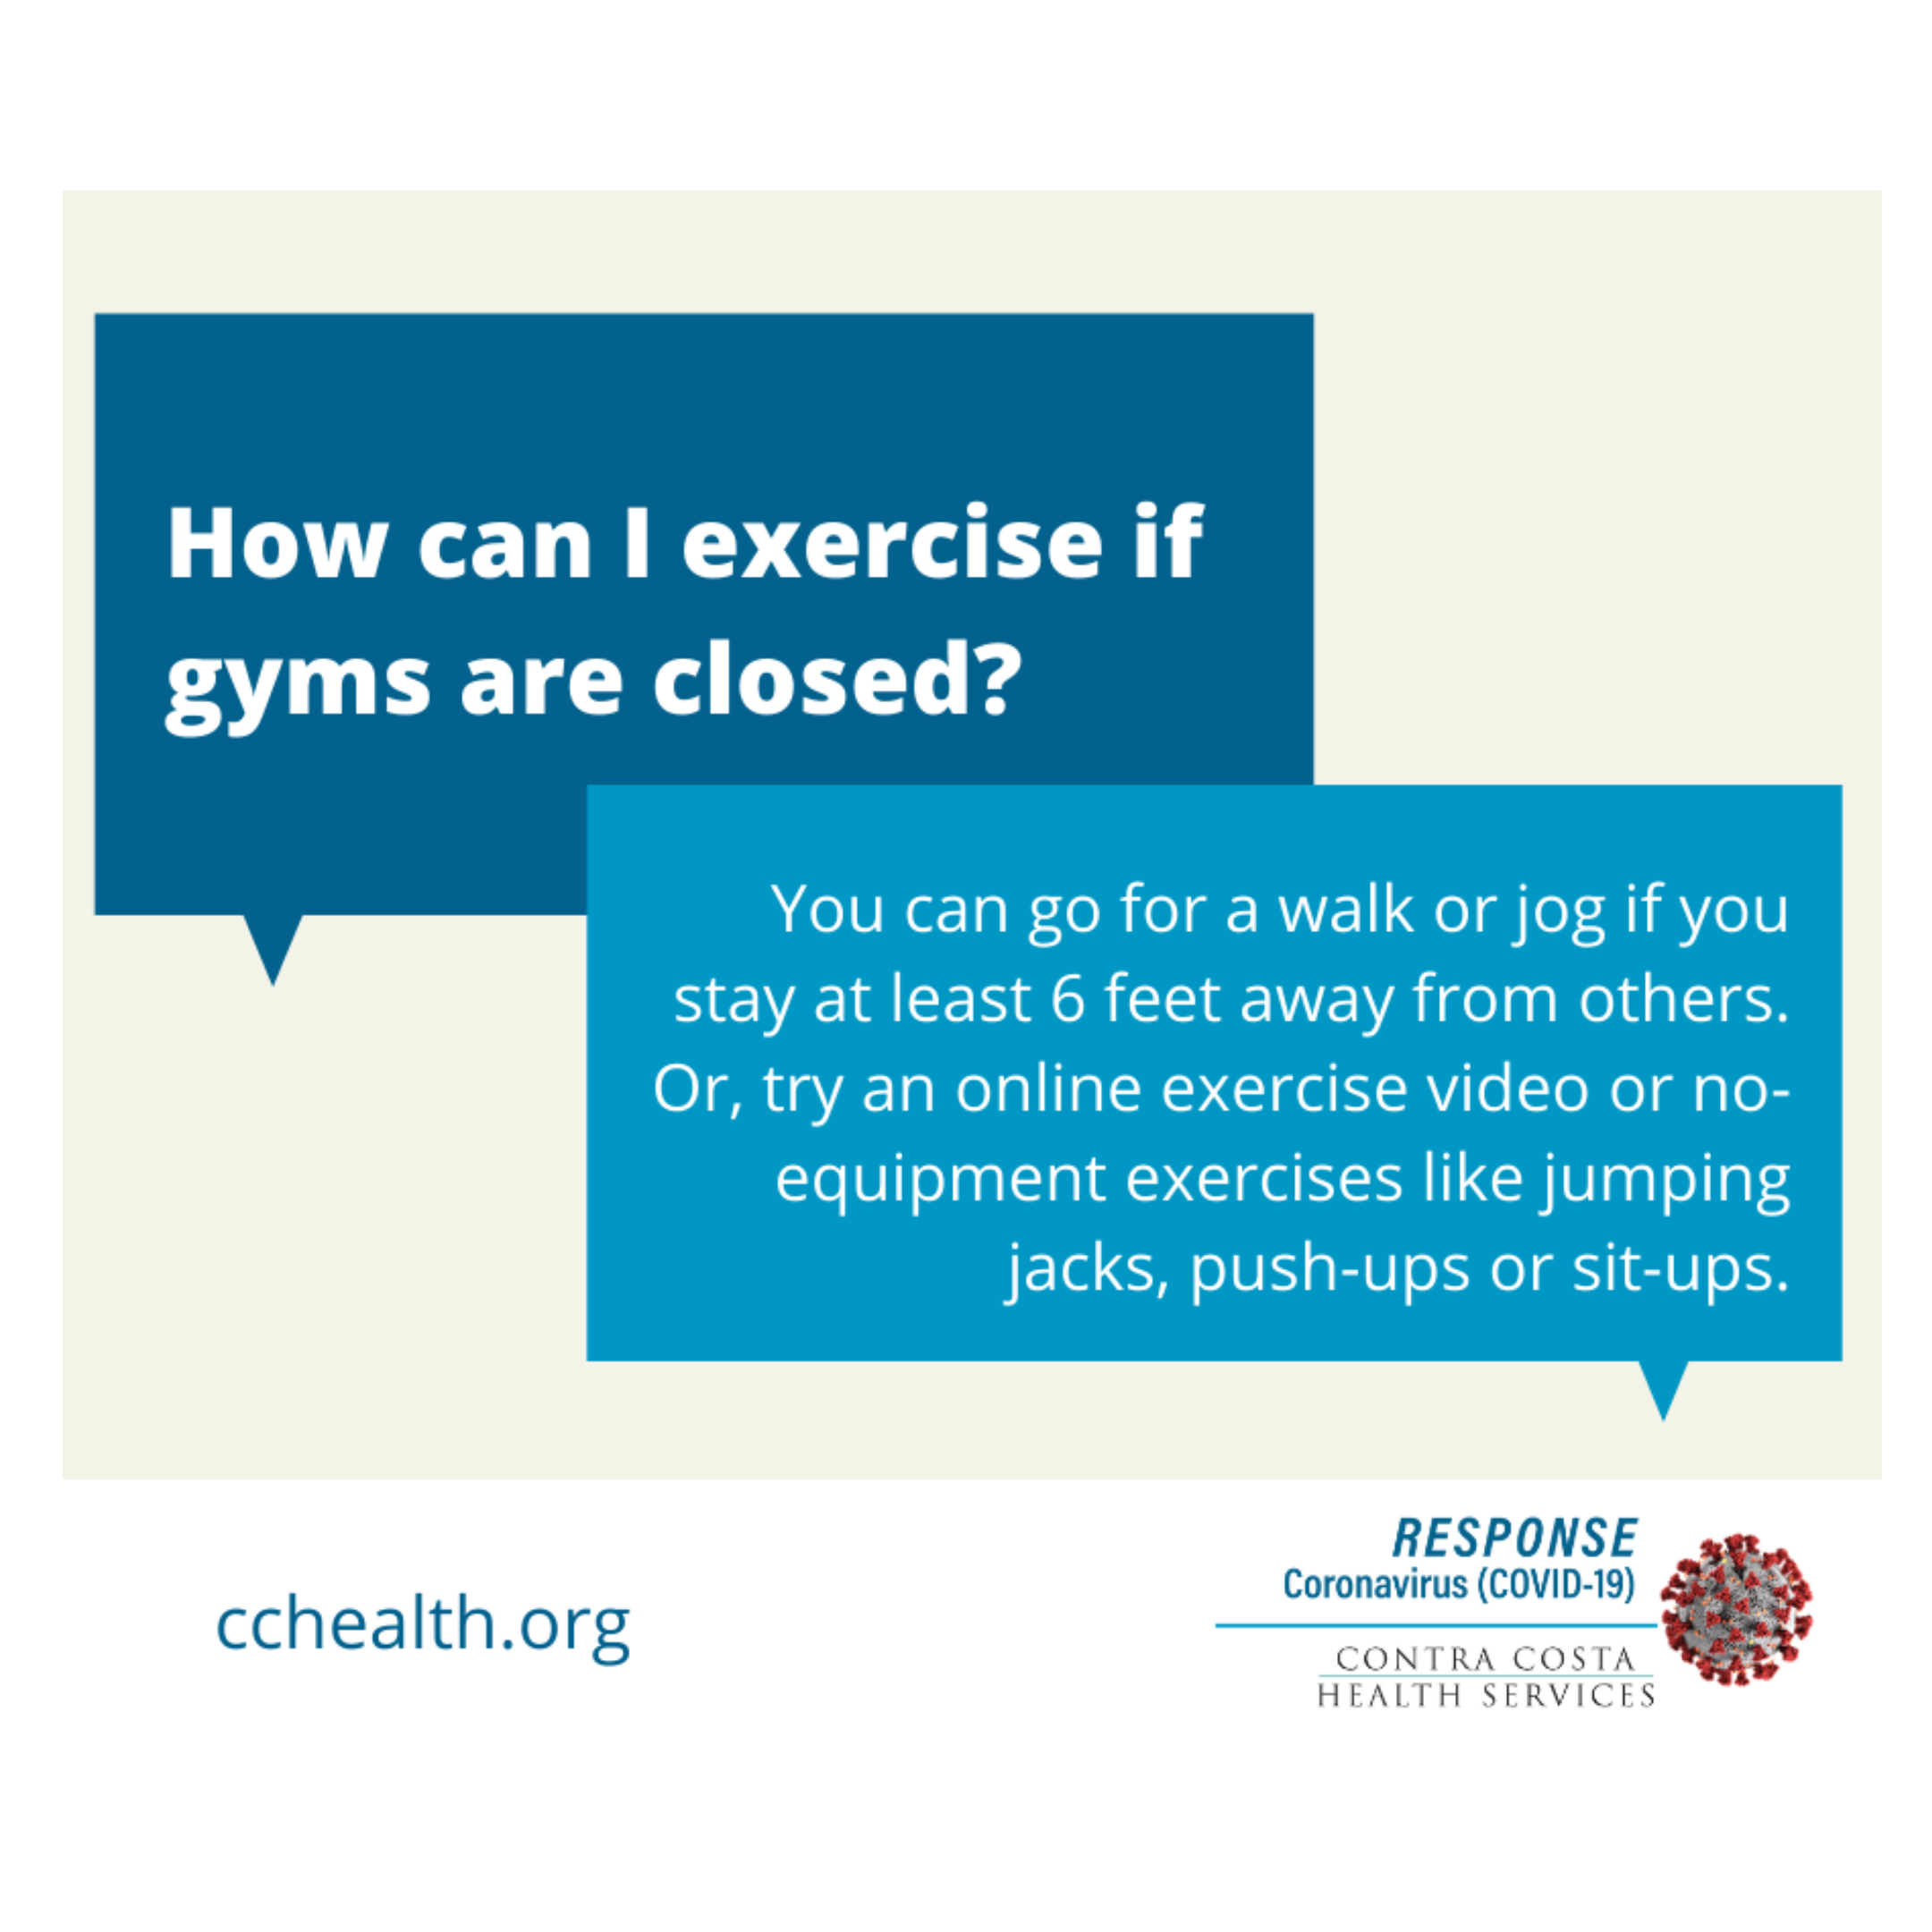 CCCHealth HowGetExercise